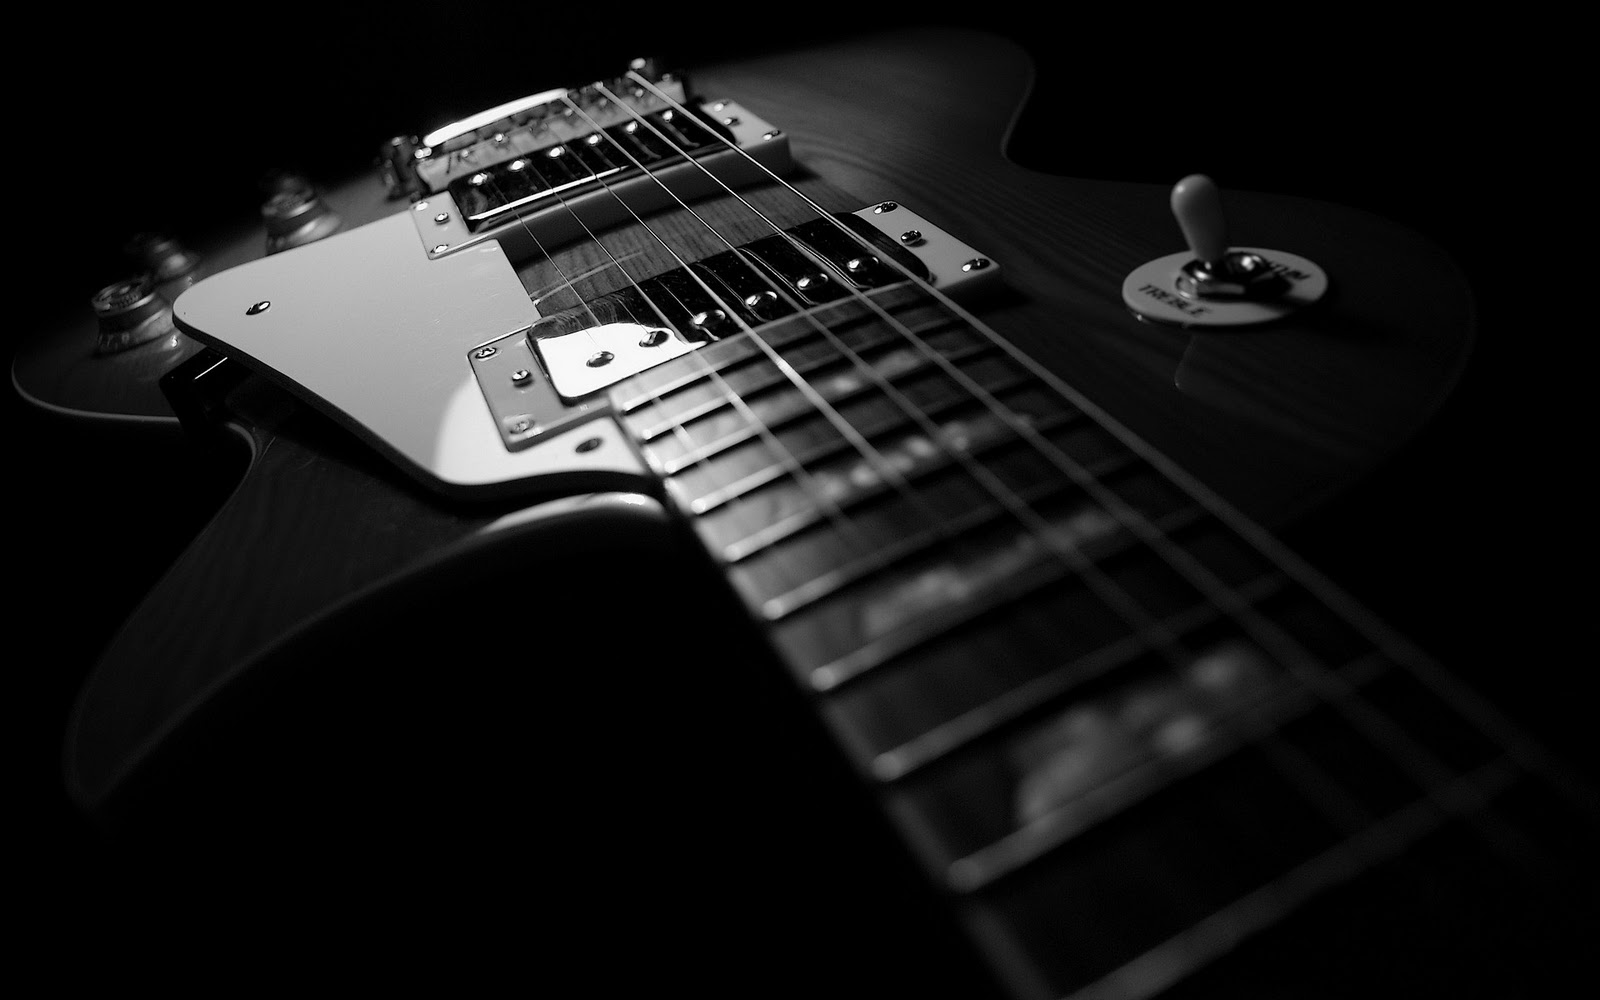 great guitar sound guitar wallpaper black and white gibson les paul 1920x1200. Black Bedroom Furniture Sets. Home Design Ideas